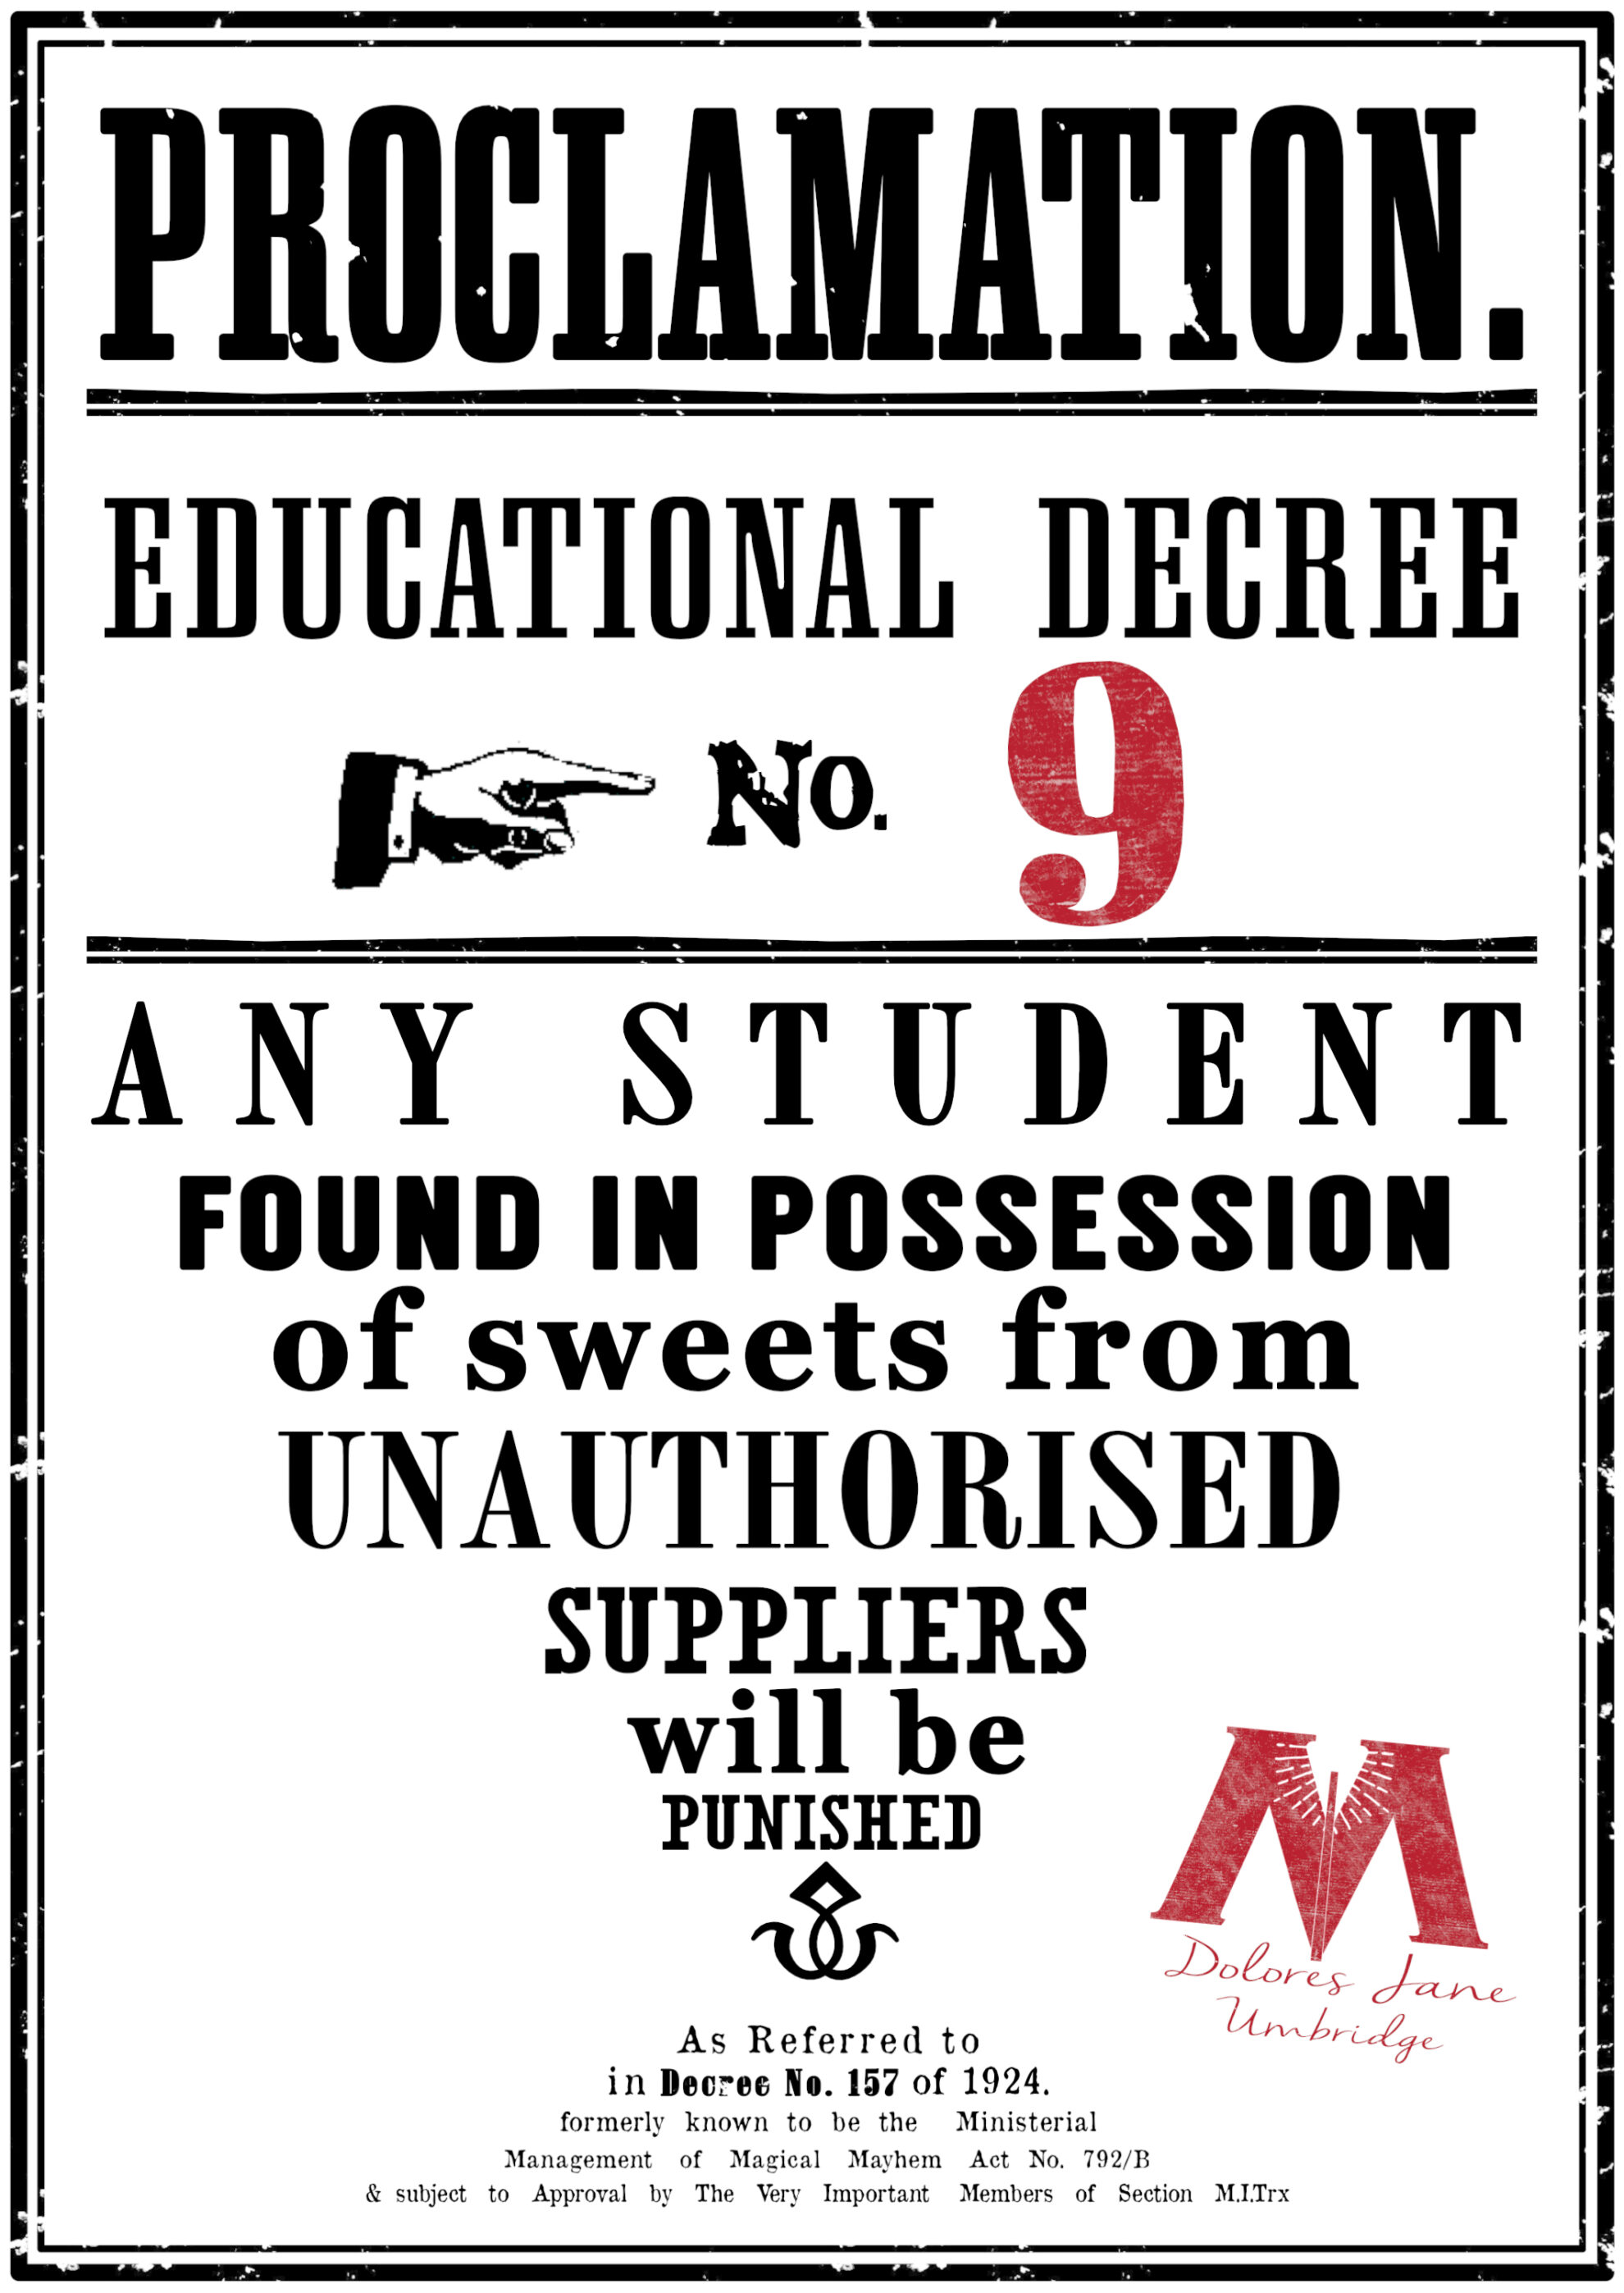 photo relating to Harry Potter Wanted Posters Printable named Harry Potter Enlightening Decrees totally free printables - Paper